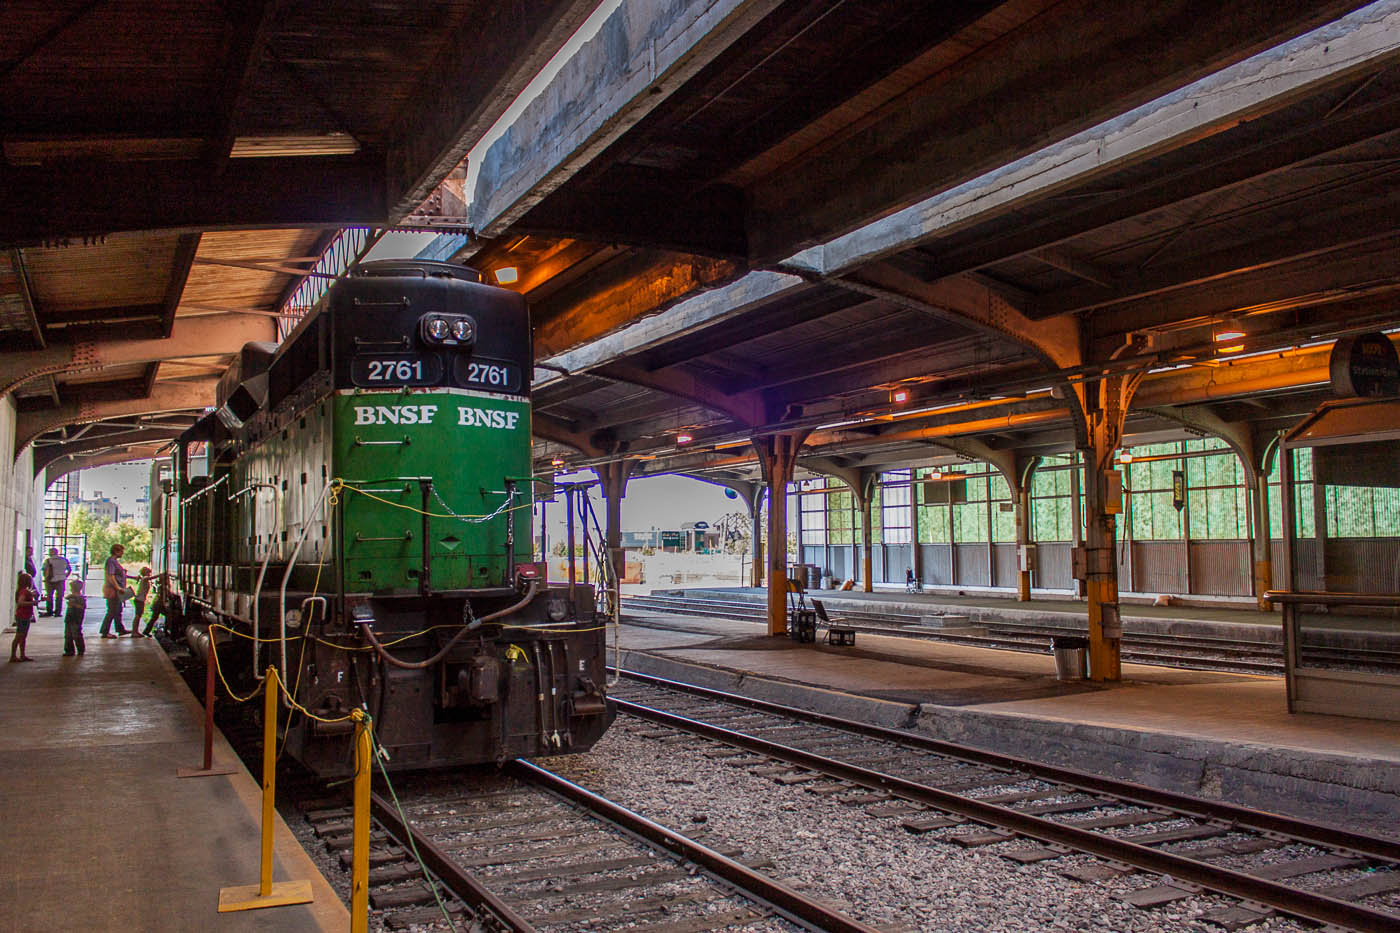 BNSF 2761 in the train shed in Winnipeg, MB 2012/09/15